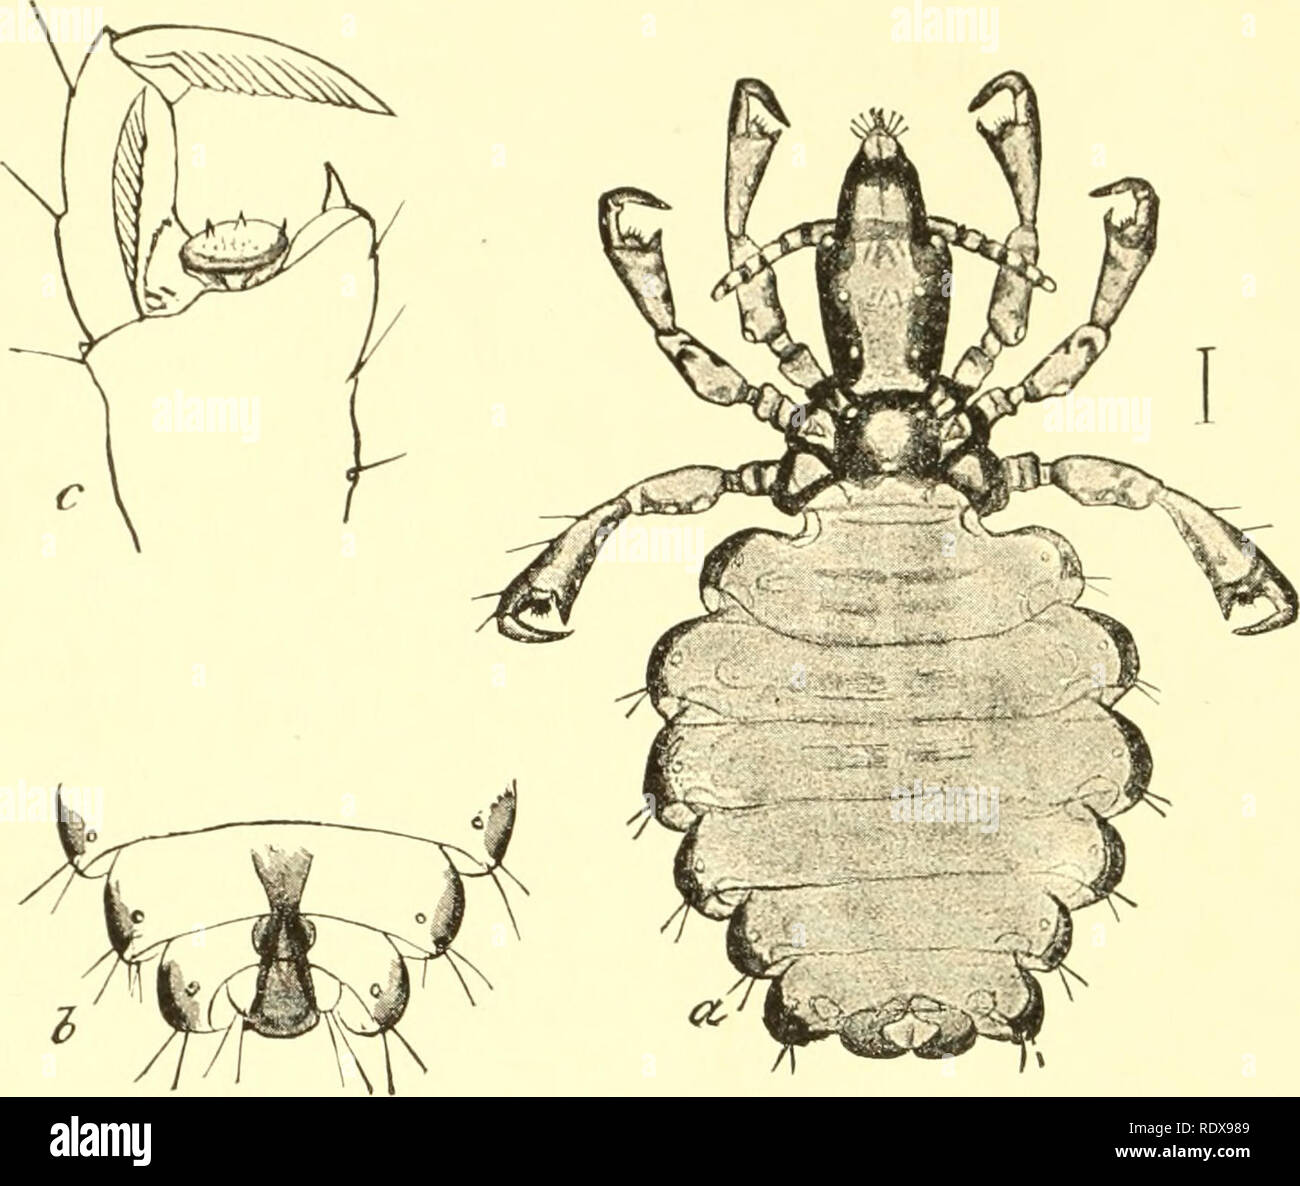 images of lice.html